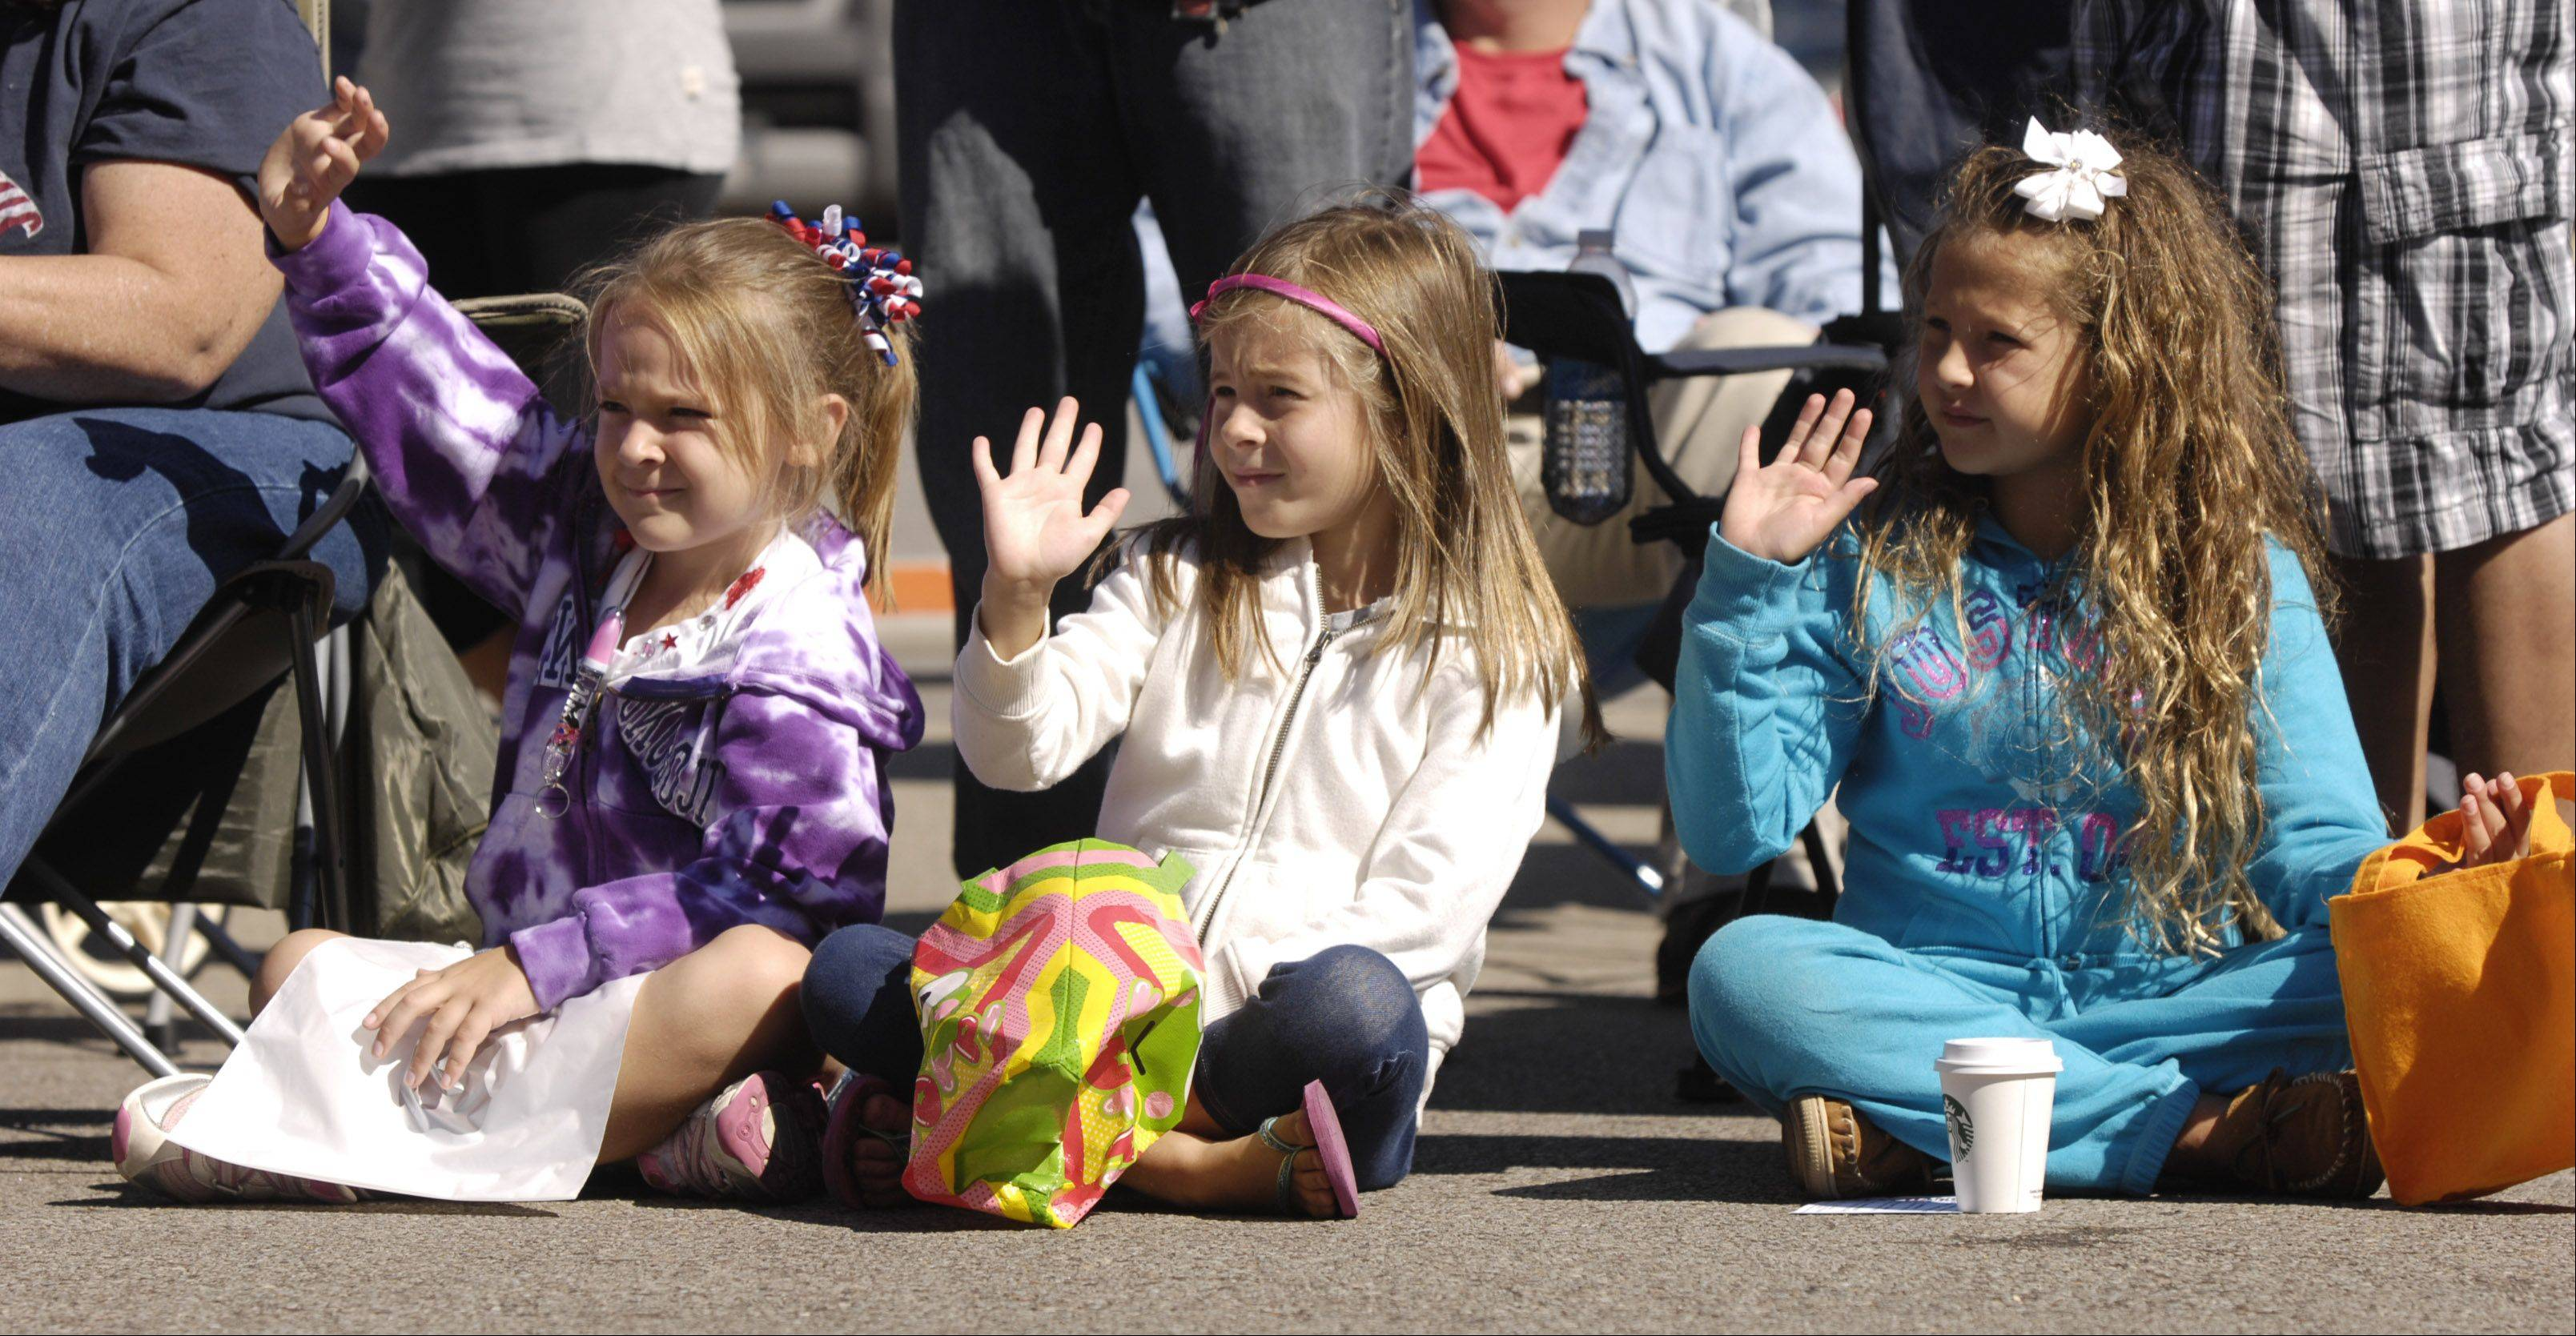 Delaney Miller, 6, Autumn Denson, 6, and Masey Danker, 7, wave as floats in Naperville's Last Fling Labor Day parade pass by.